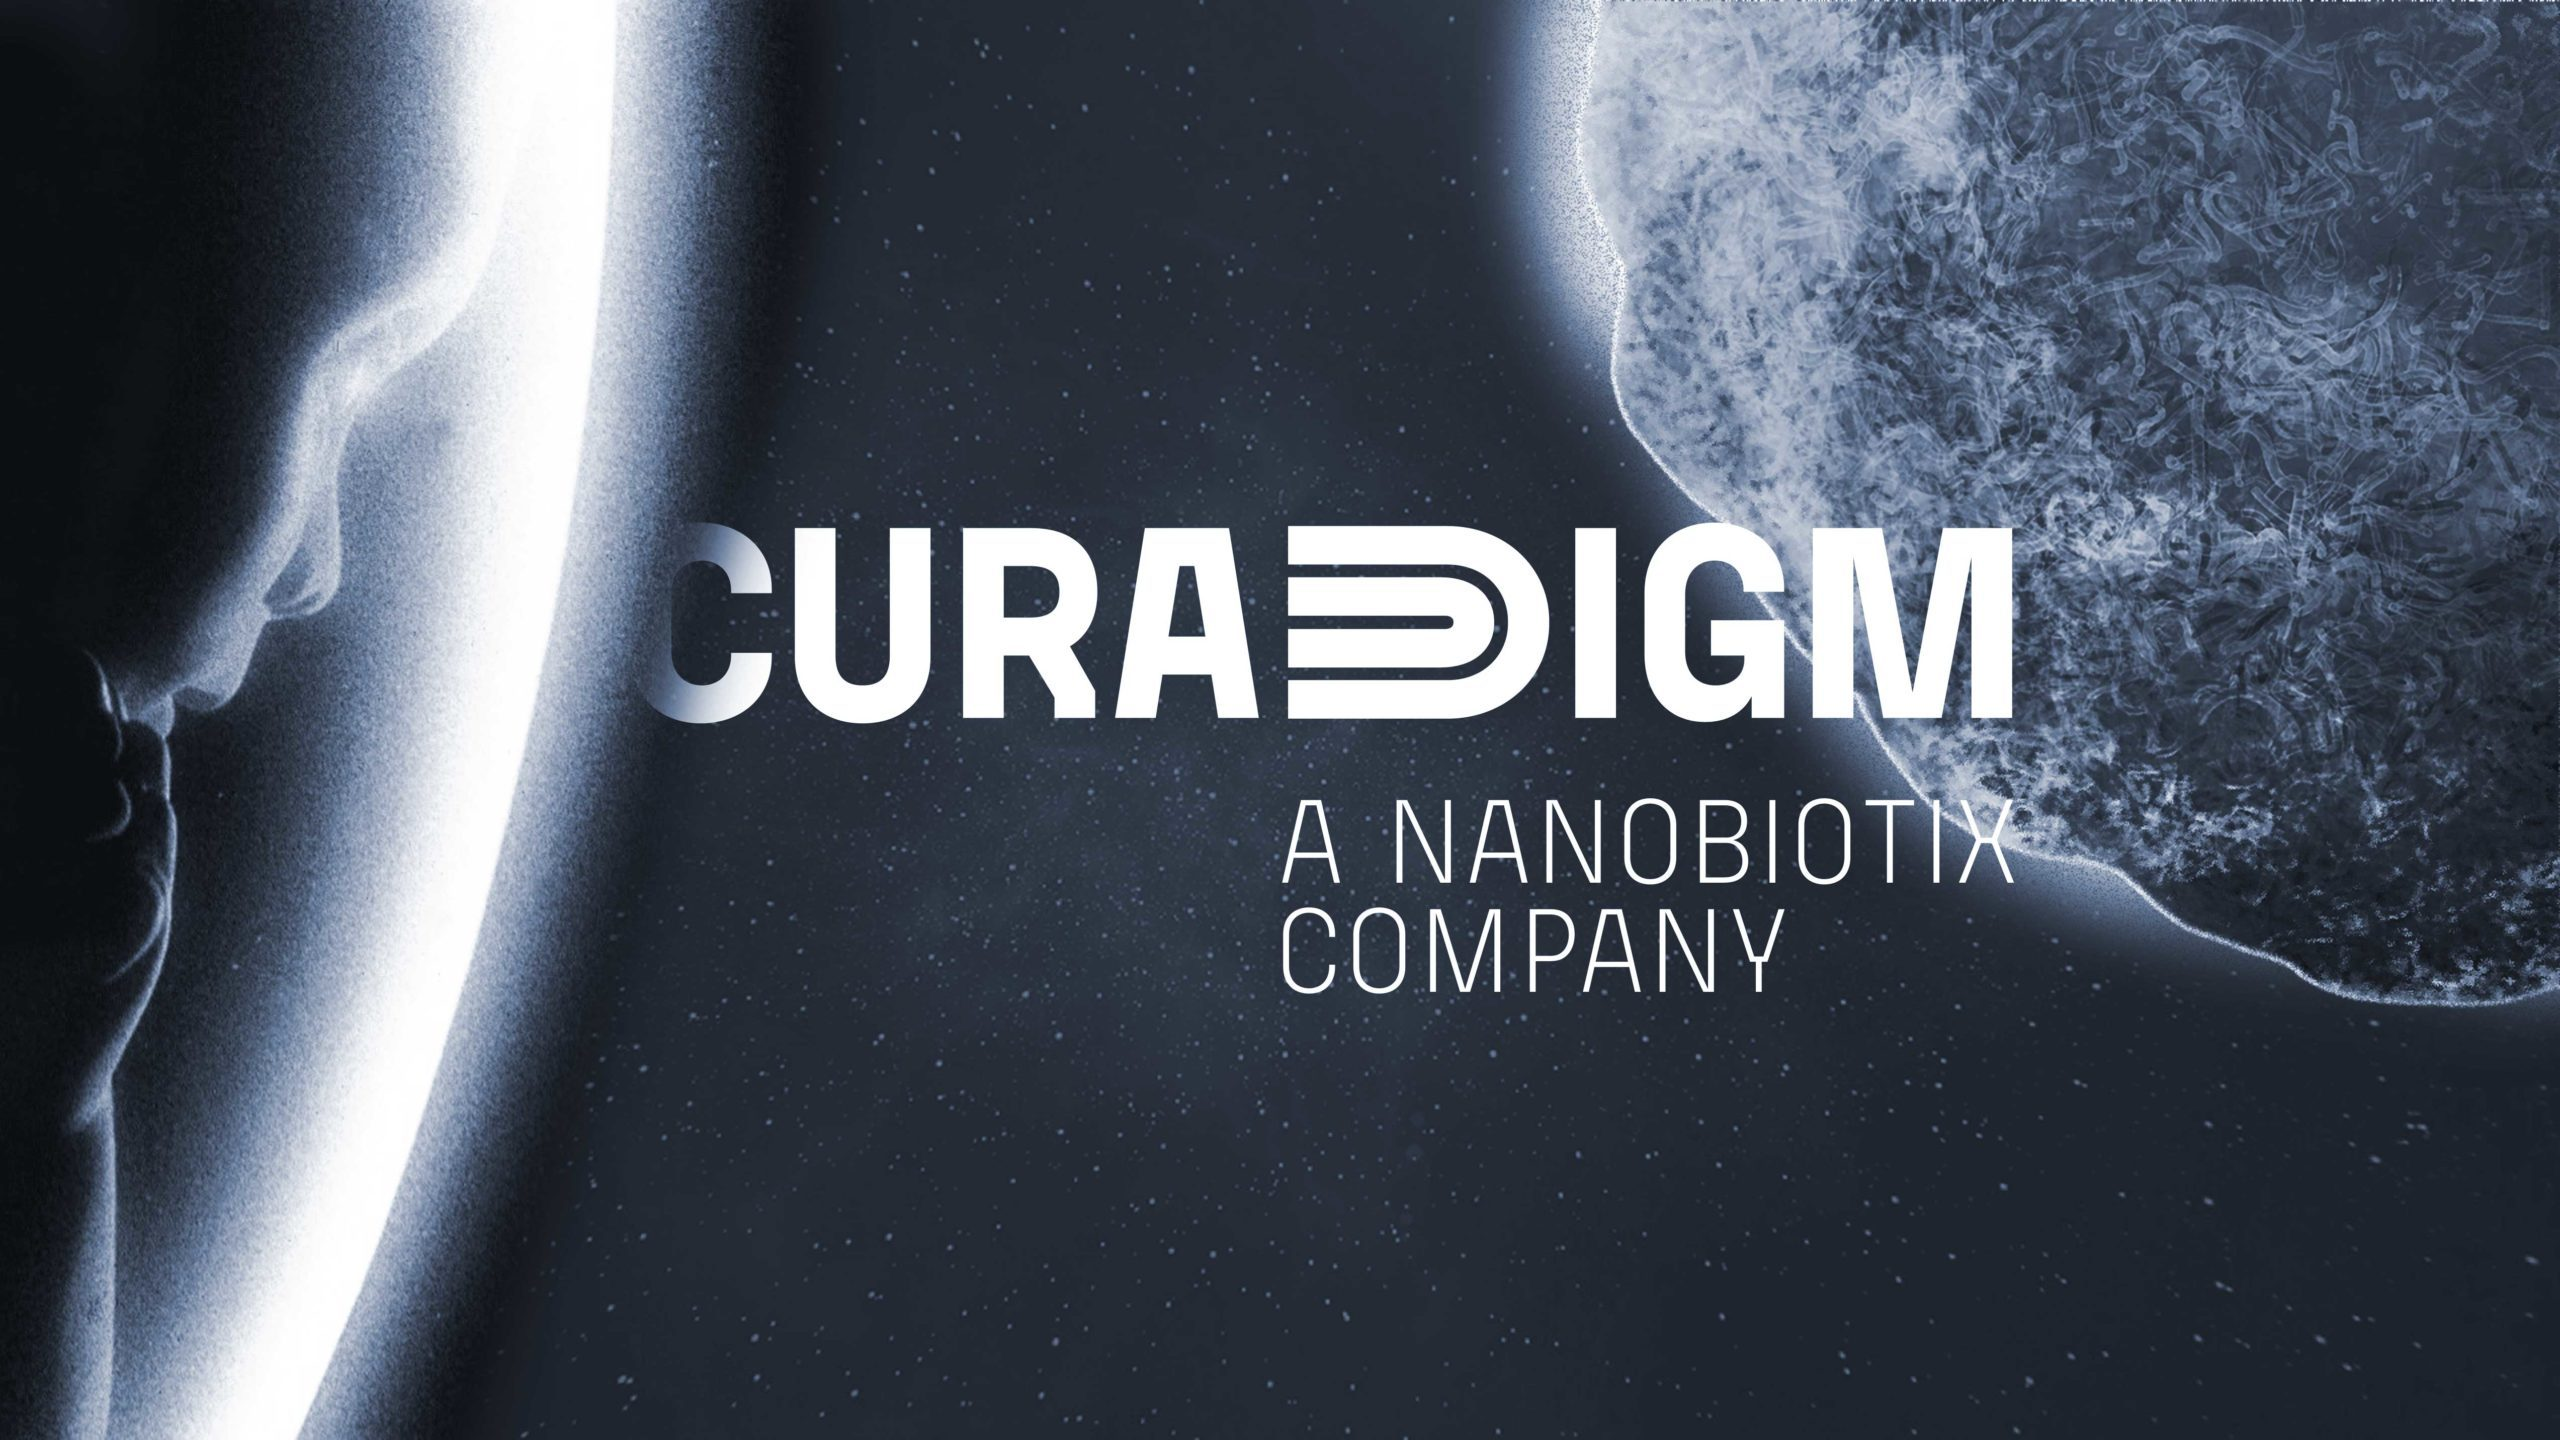 NANOBIOTIX ANNOUNCES THE LAUNCH OF CURADIGM: A NEW NANOTECHNOLOGY PLATFORM FOR HEALTHCARE